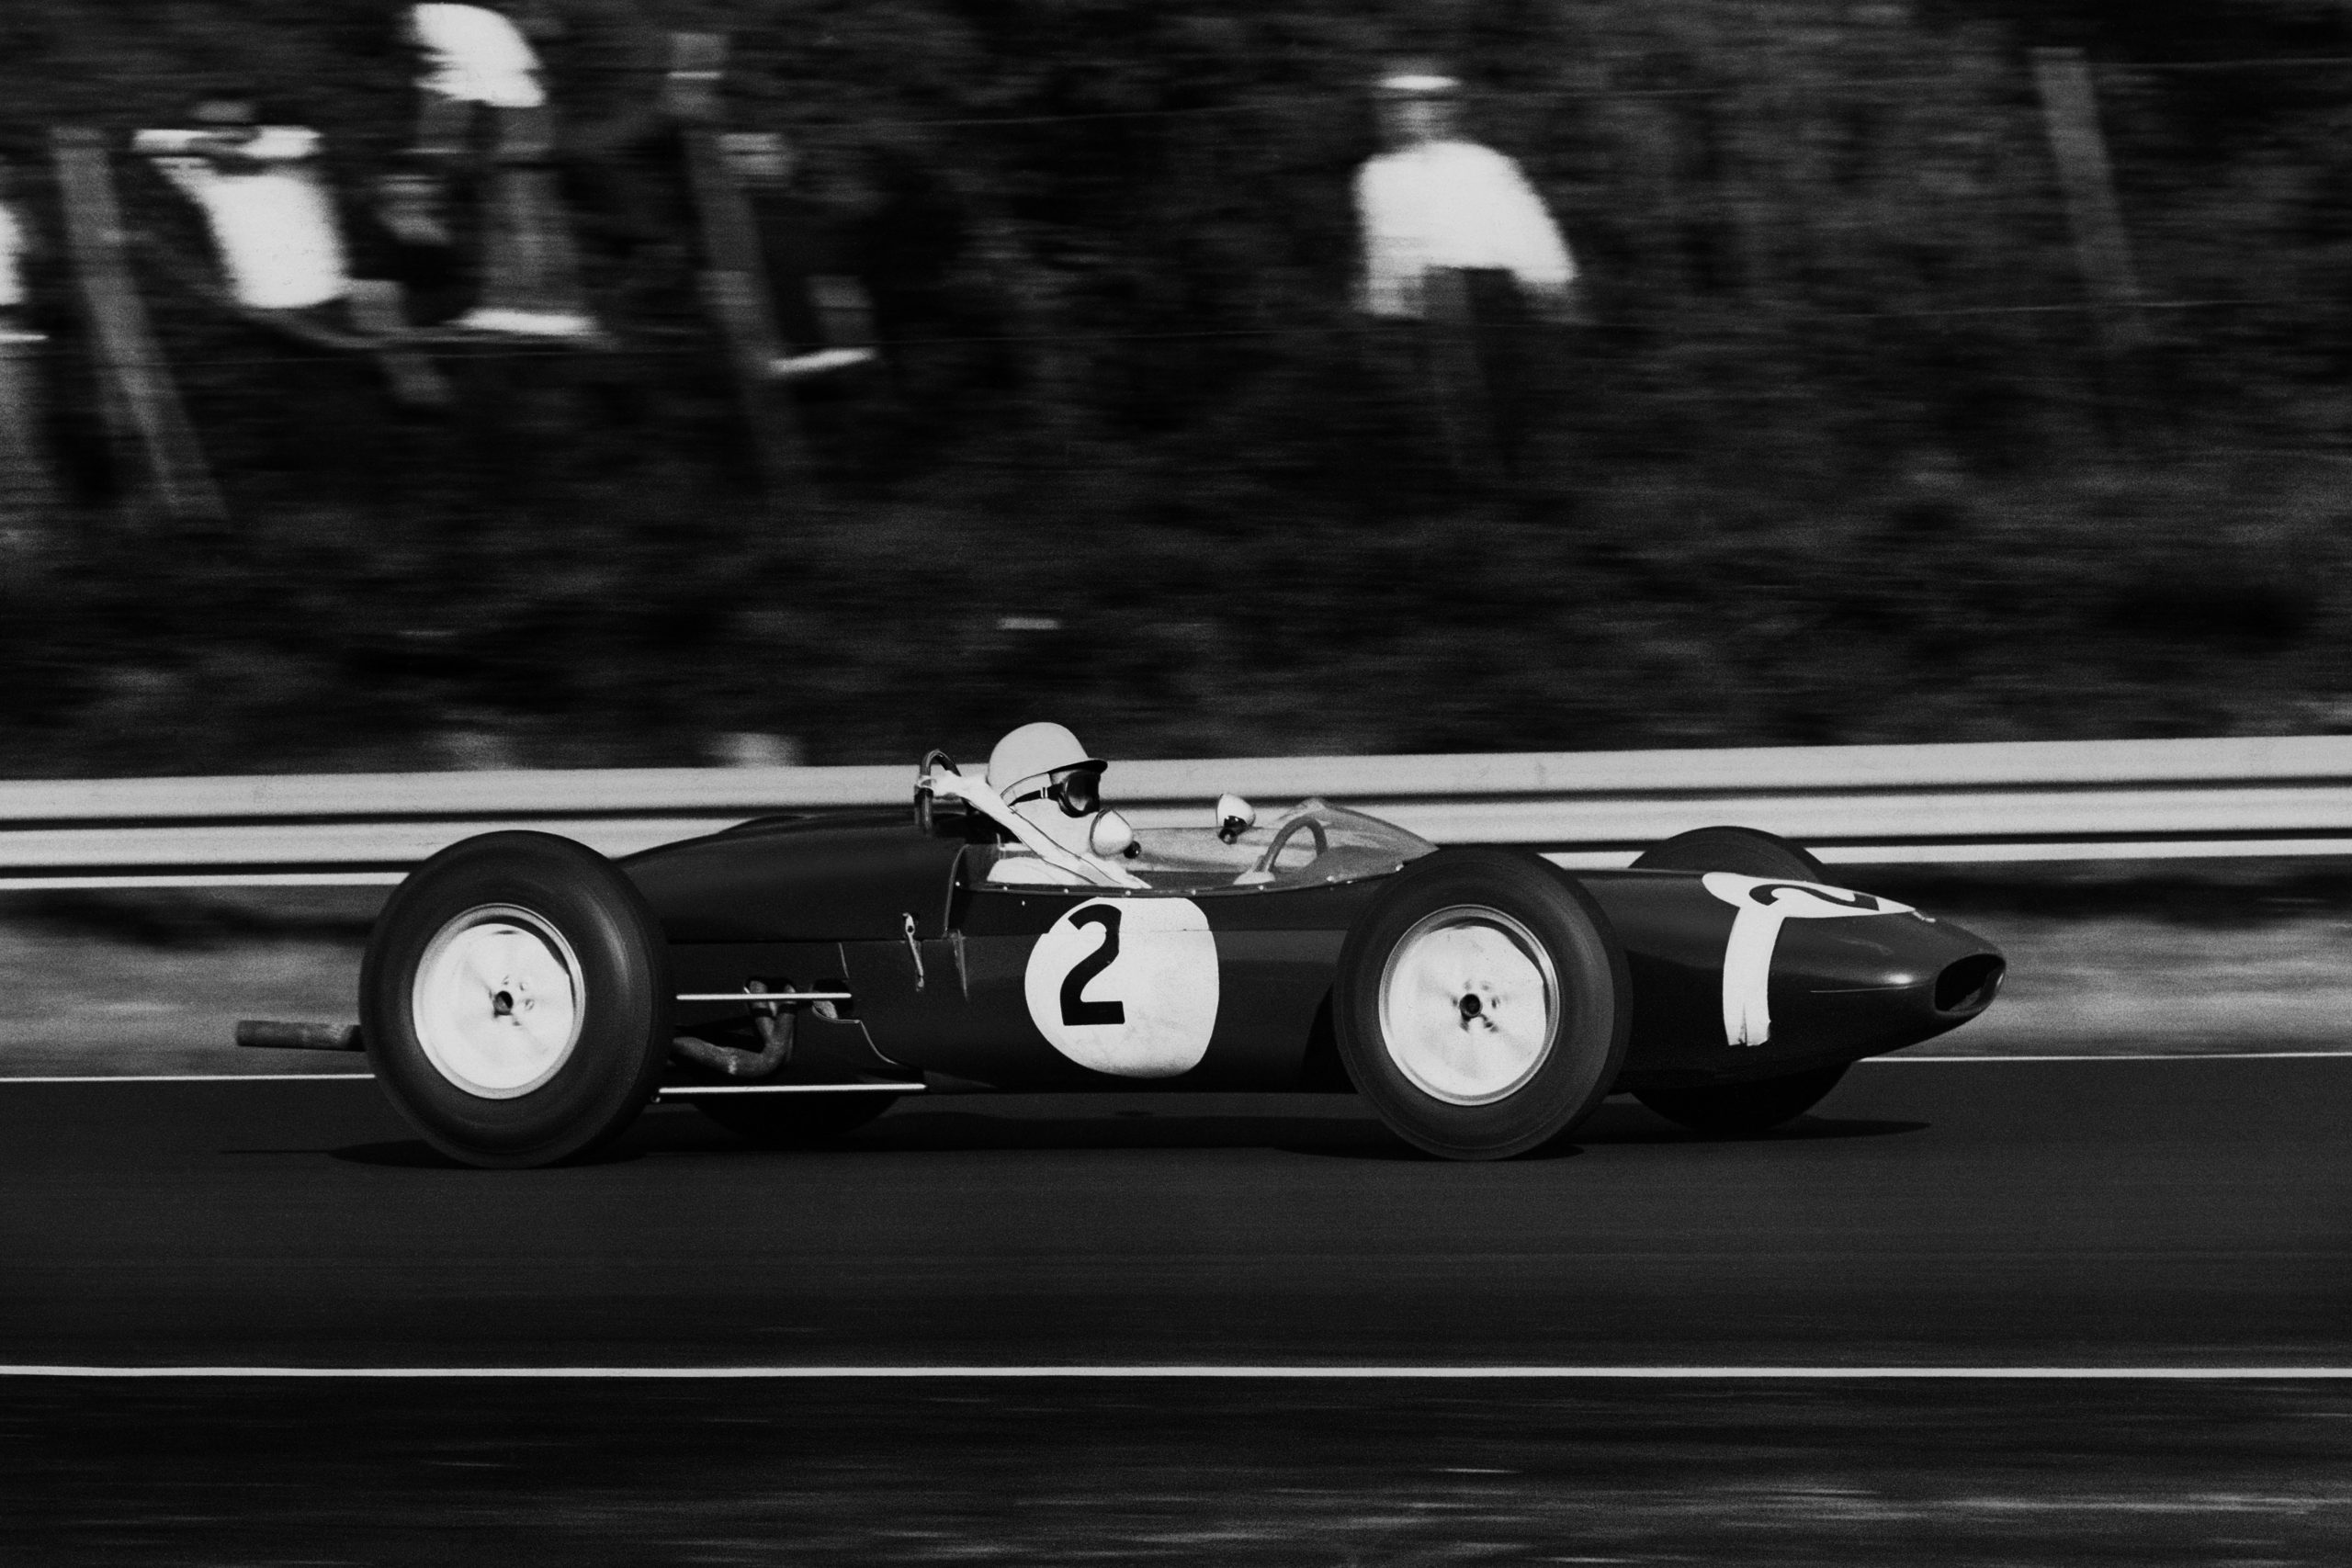 Stirling Moss in a Lotus 21-Climax.